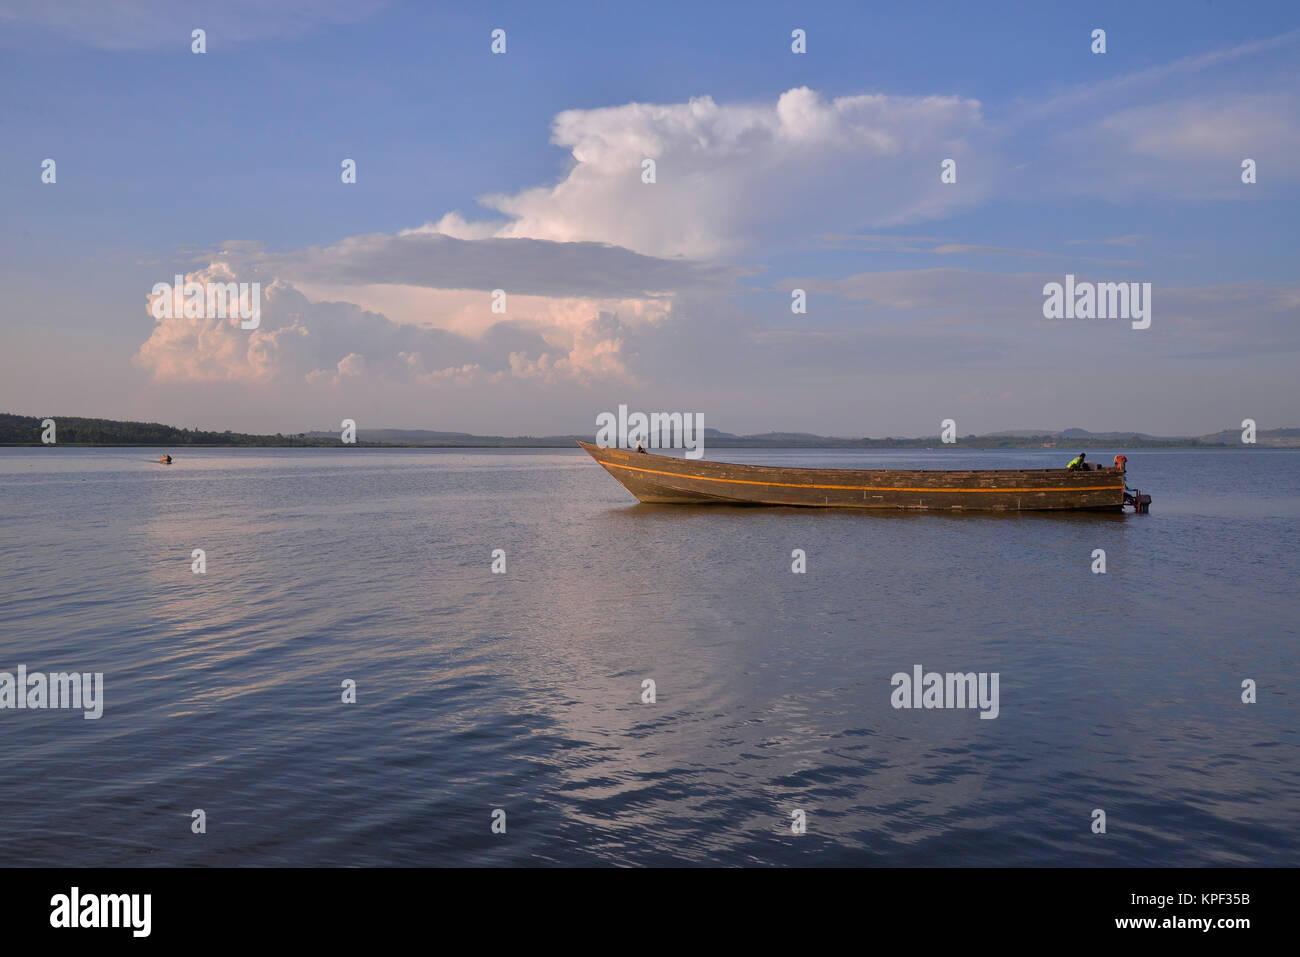 Uganda is called 'The pearl of Africa' because of its beautiful landscapes, friendly people, and abundance - Stock Image